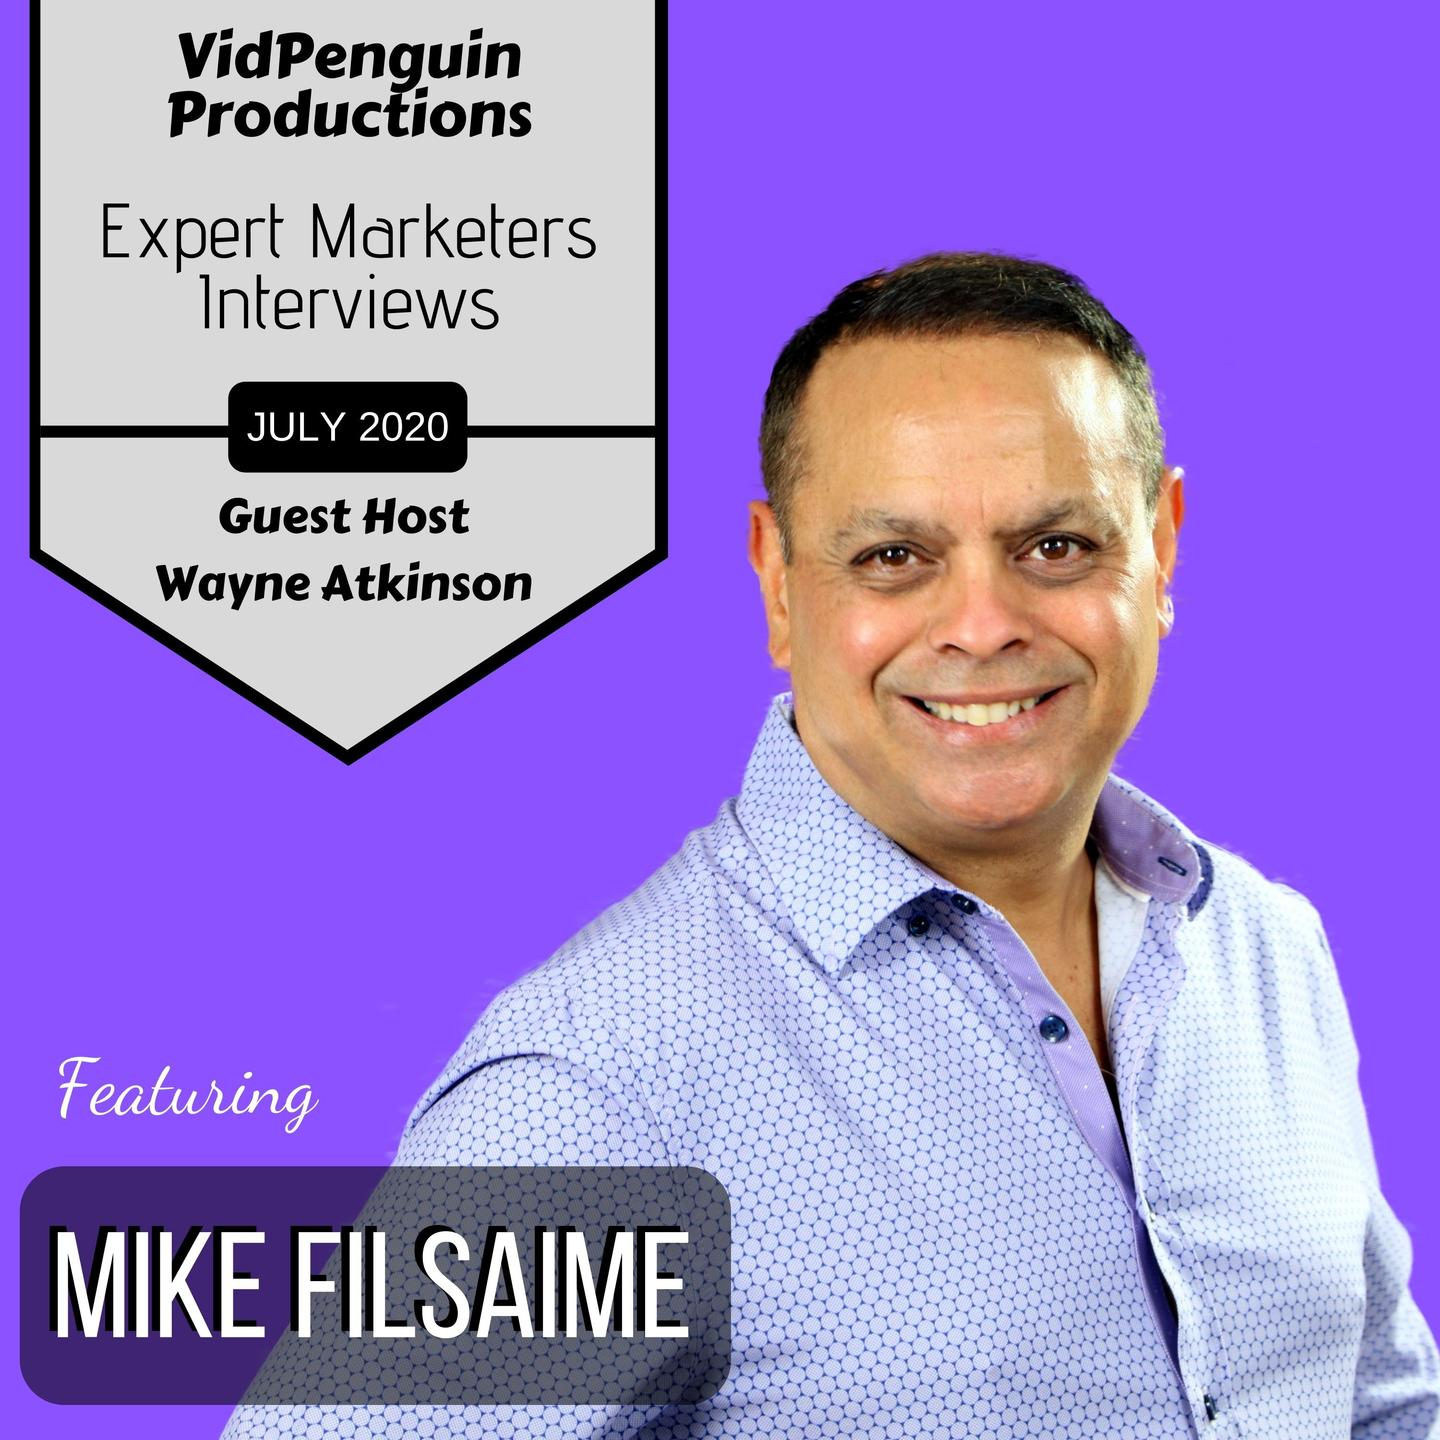 Mike Filsaime interview